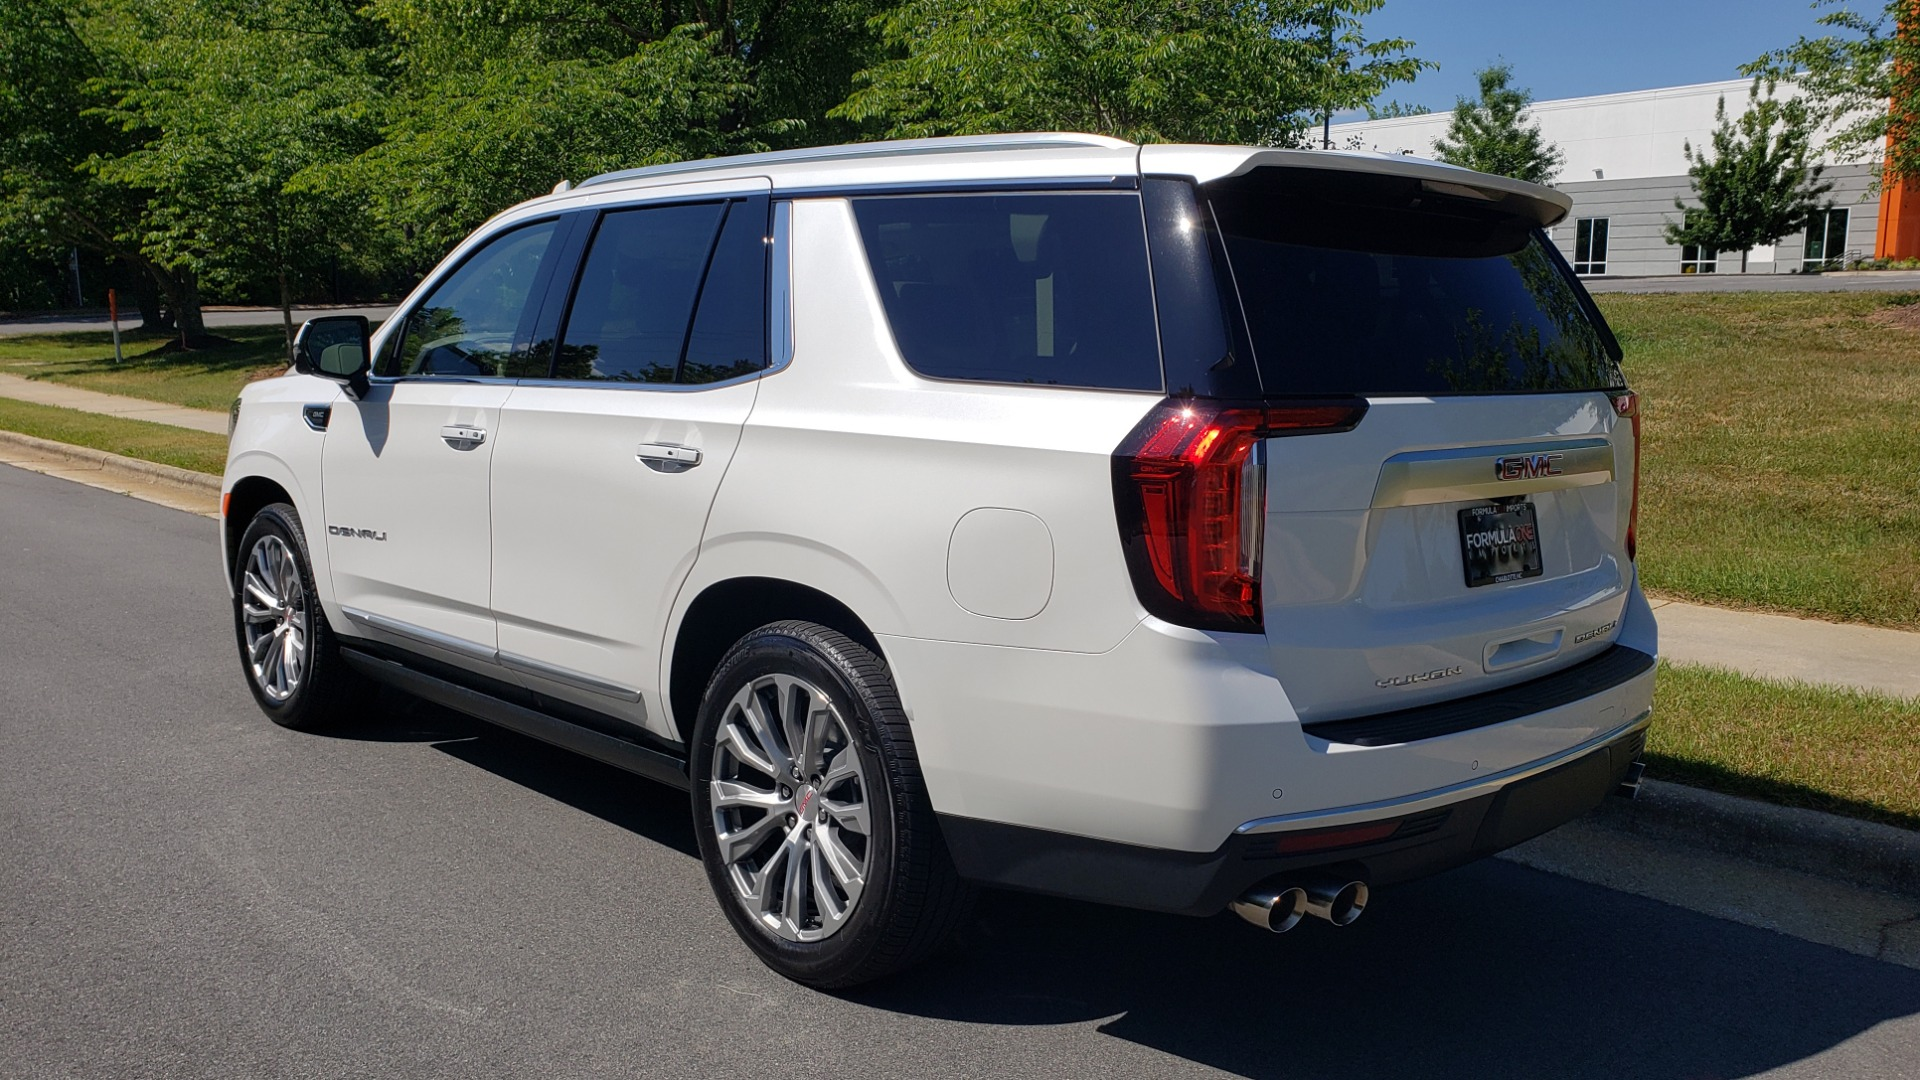 Used 2021 GMC YUKON DENALI PREM / 4WD / NAV / TECH / TRAILER / SECURITY / SUNROOF for sale Sold at Formula Imports in Charlotte NC 28227 3